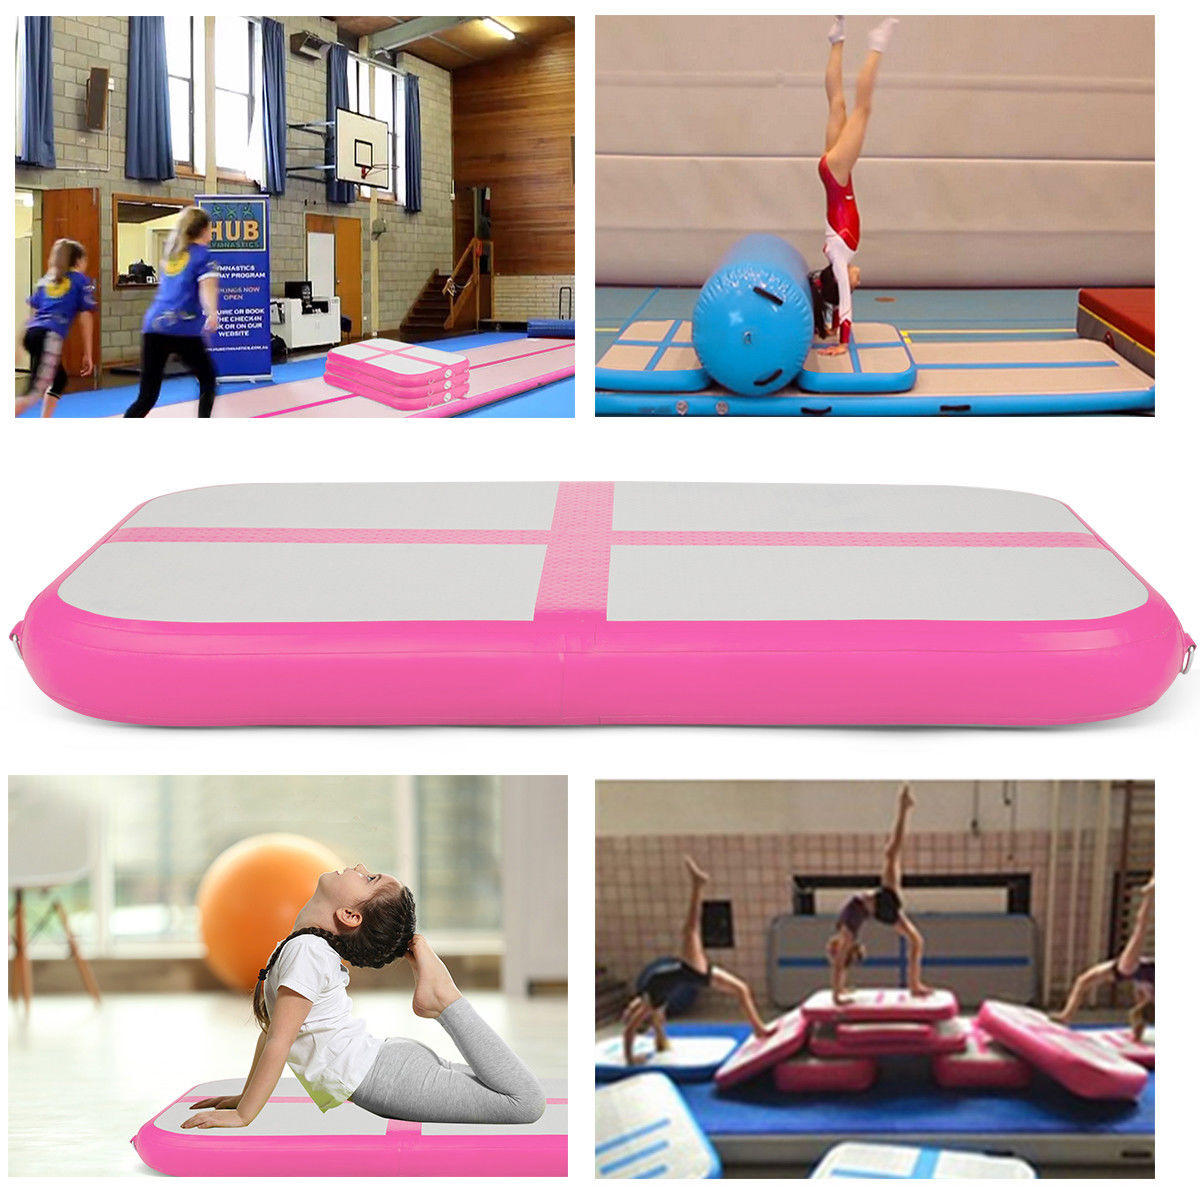 10ft/13ft/16ft/20ft Air Track Inflatable Gymnastics Tumbling Air Track Mat